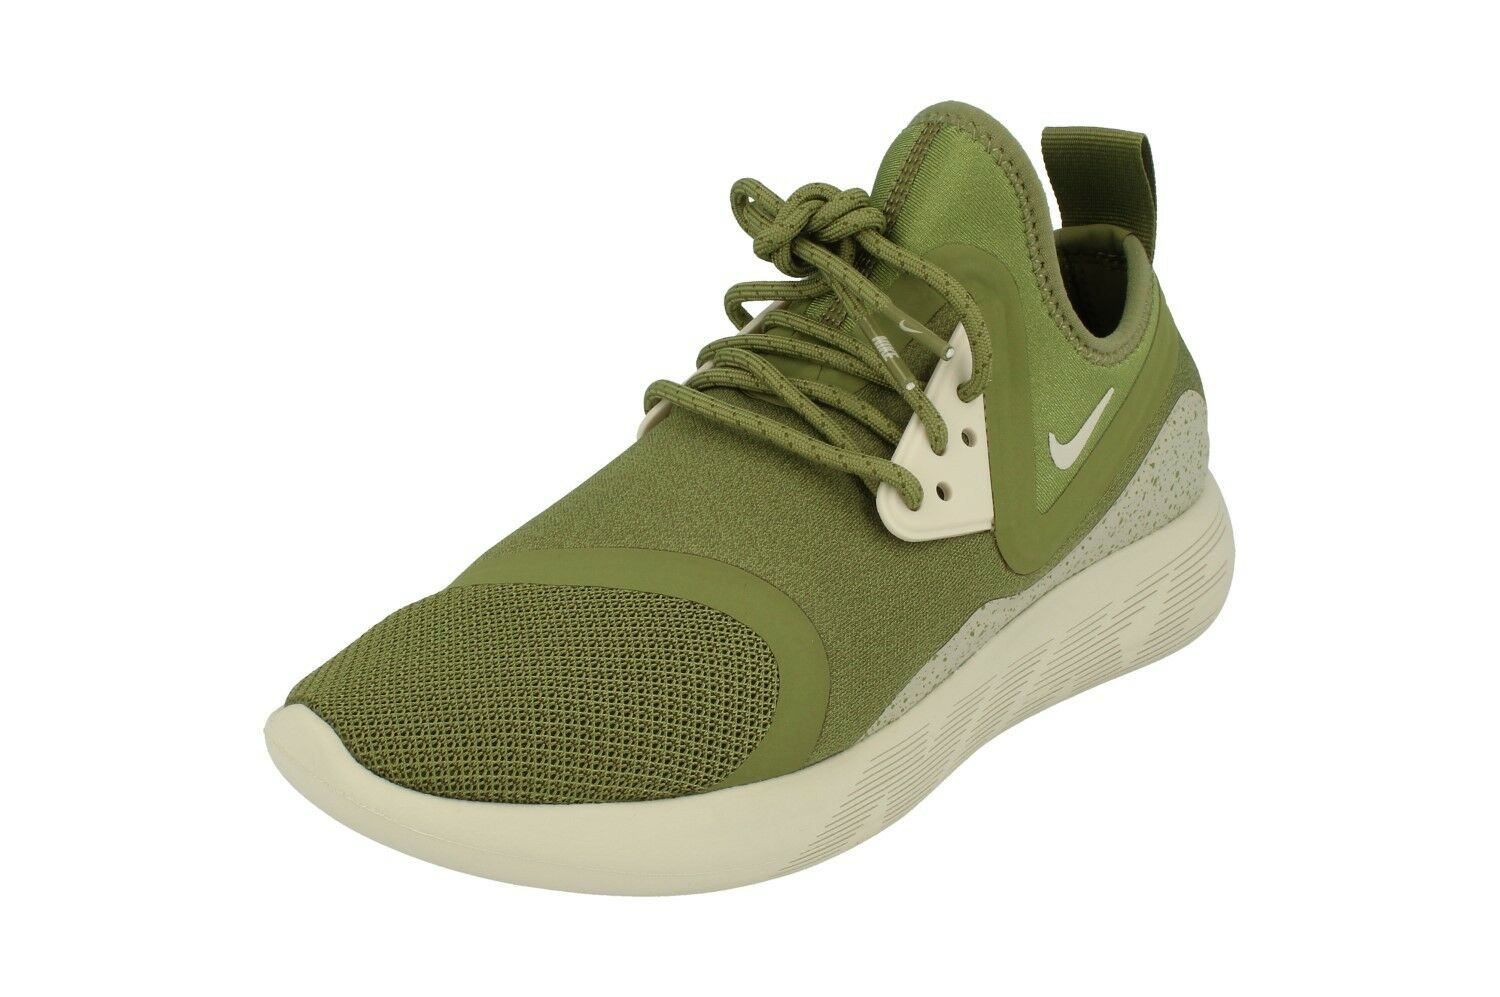 Nike Lunarcharge Essential Mens Running Trainers 923619 Sneakers Shoes 307